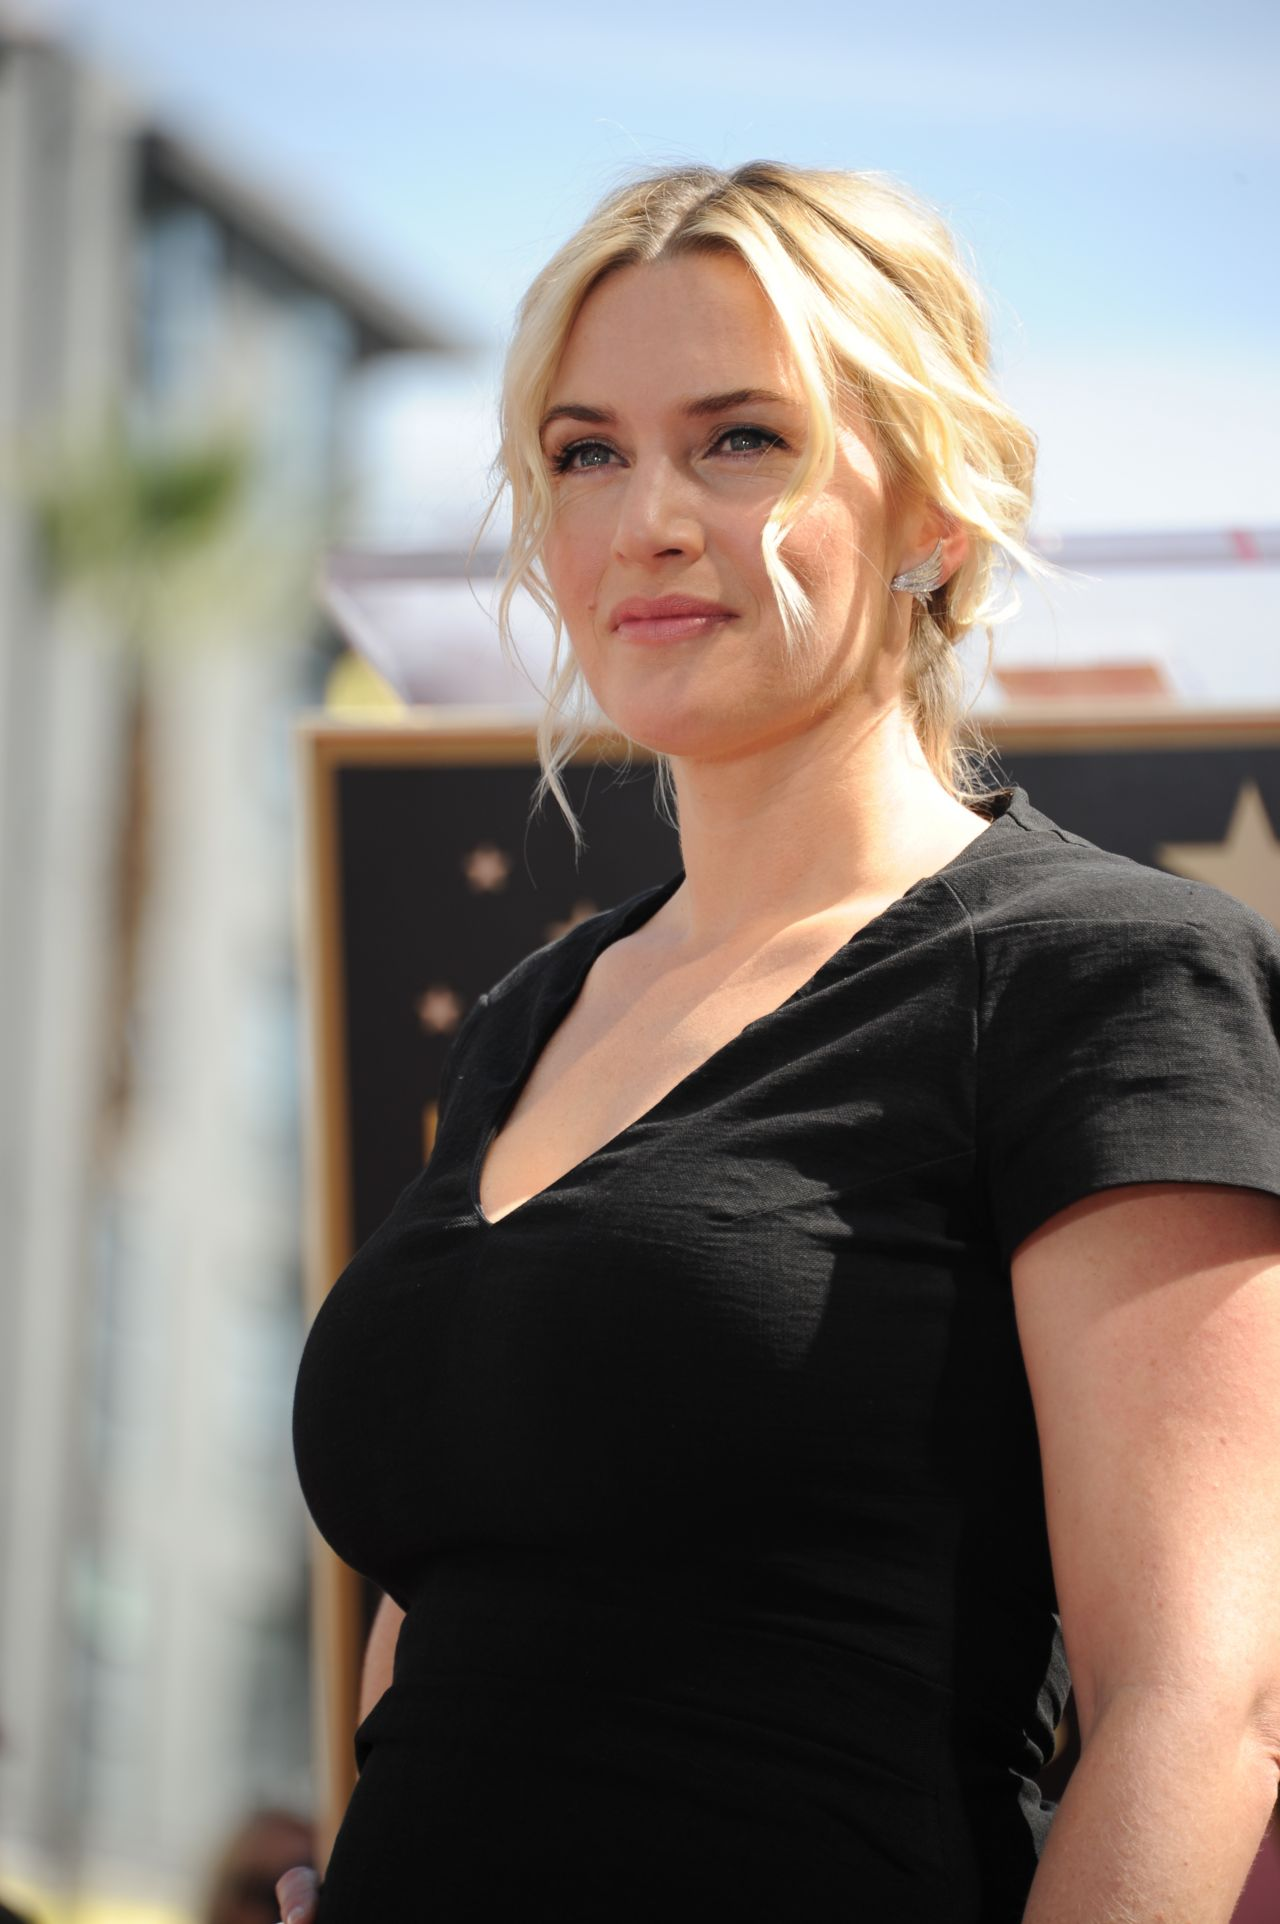 Kate winslet the reader nude compilation - 2 part 9